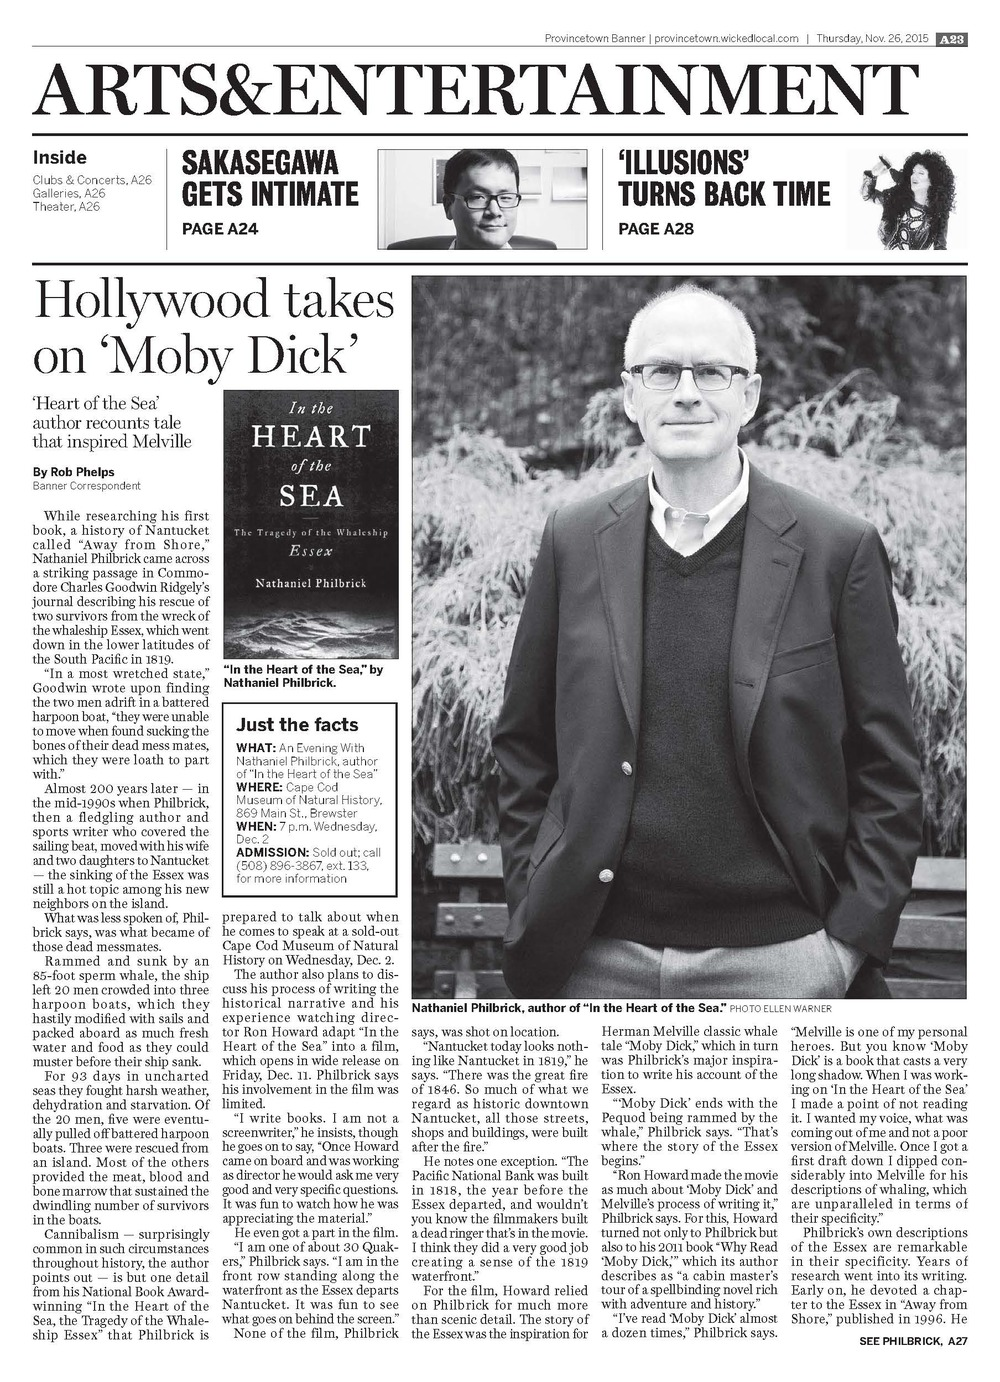 """Author Interview / Book Review  Nathaniel Philbrook,author, """"In the Heart of the Sea,""""  Provincetown Banner,  November 26, 2015."""